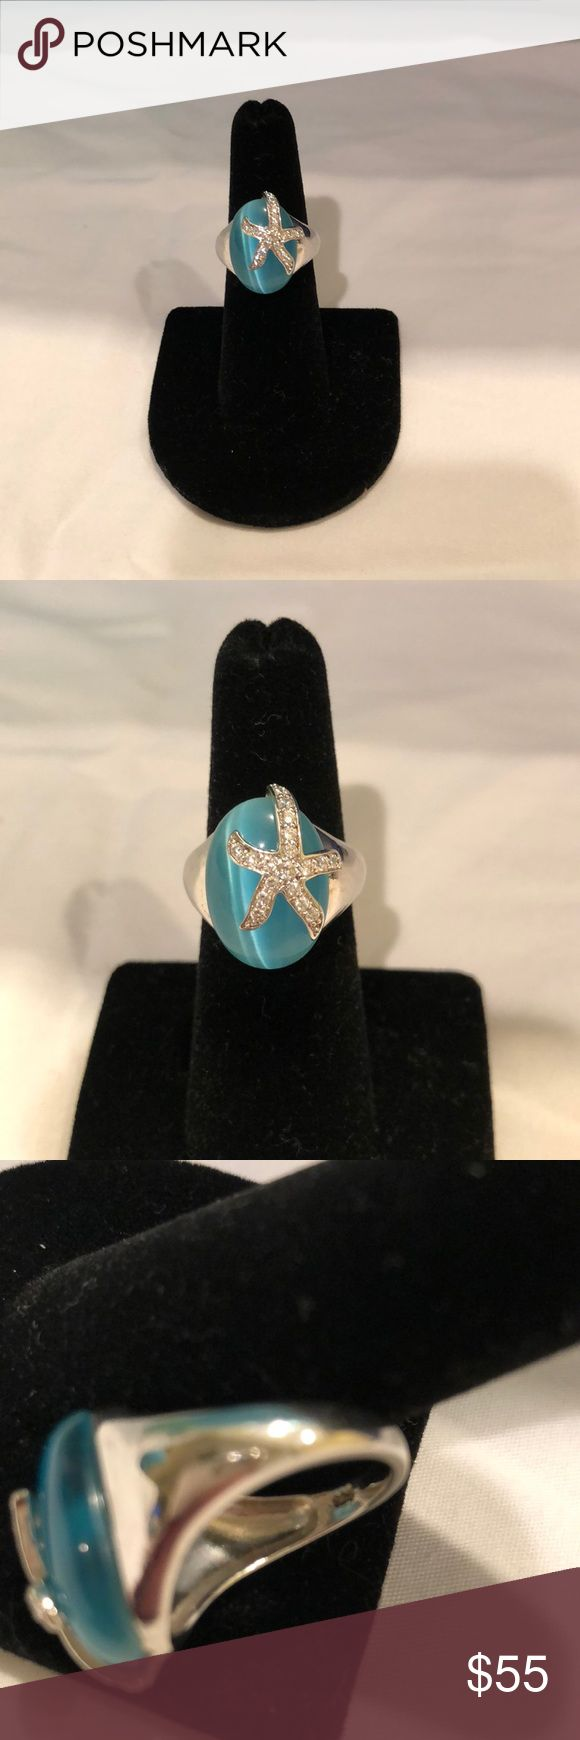 Sterling silver Blue cats eye stone Starfish ring This gorgeous piece came from Burke's Jewelers, our local fine jewelry store.  They sell and design a lot of nautical jewelry.  This piece does show signs of wear, but in excellent condition.  Stamped 925, and the starfish has beautiful cz stones.  Smoke free home! Jewelry Rings